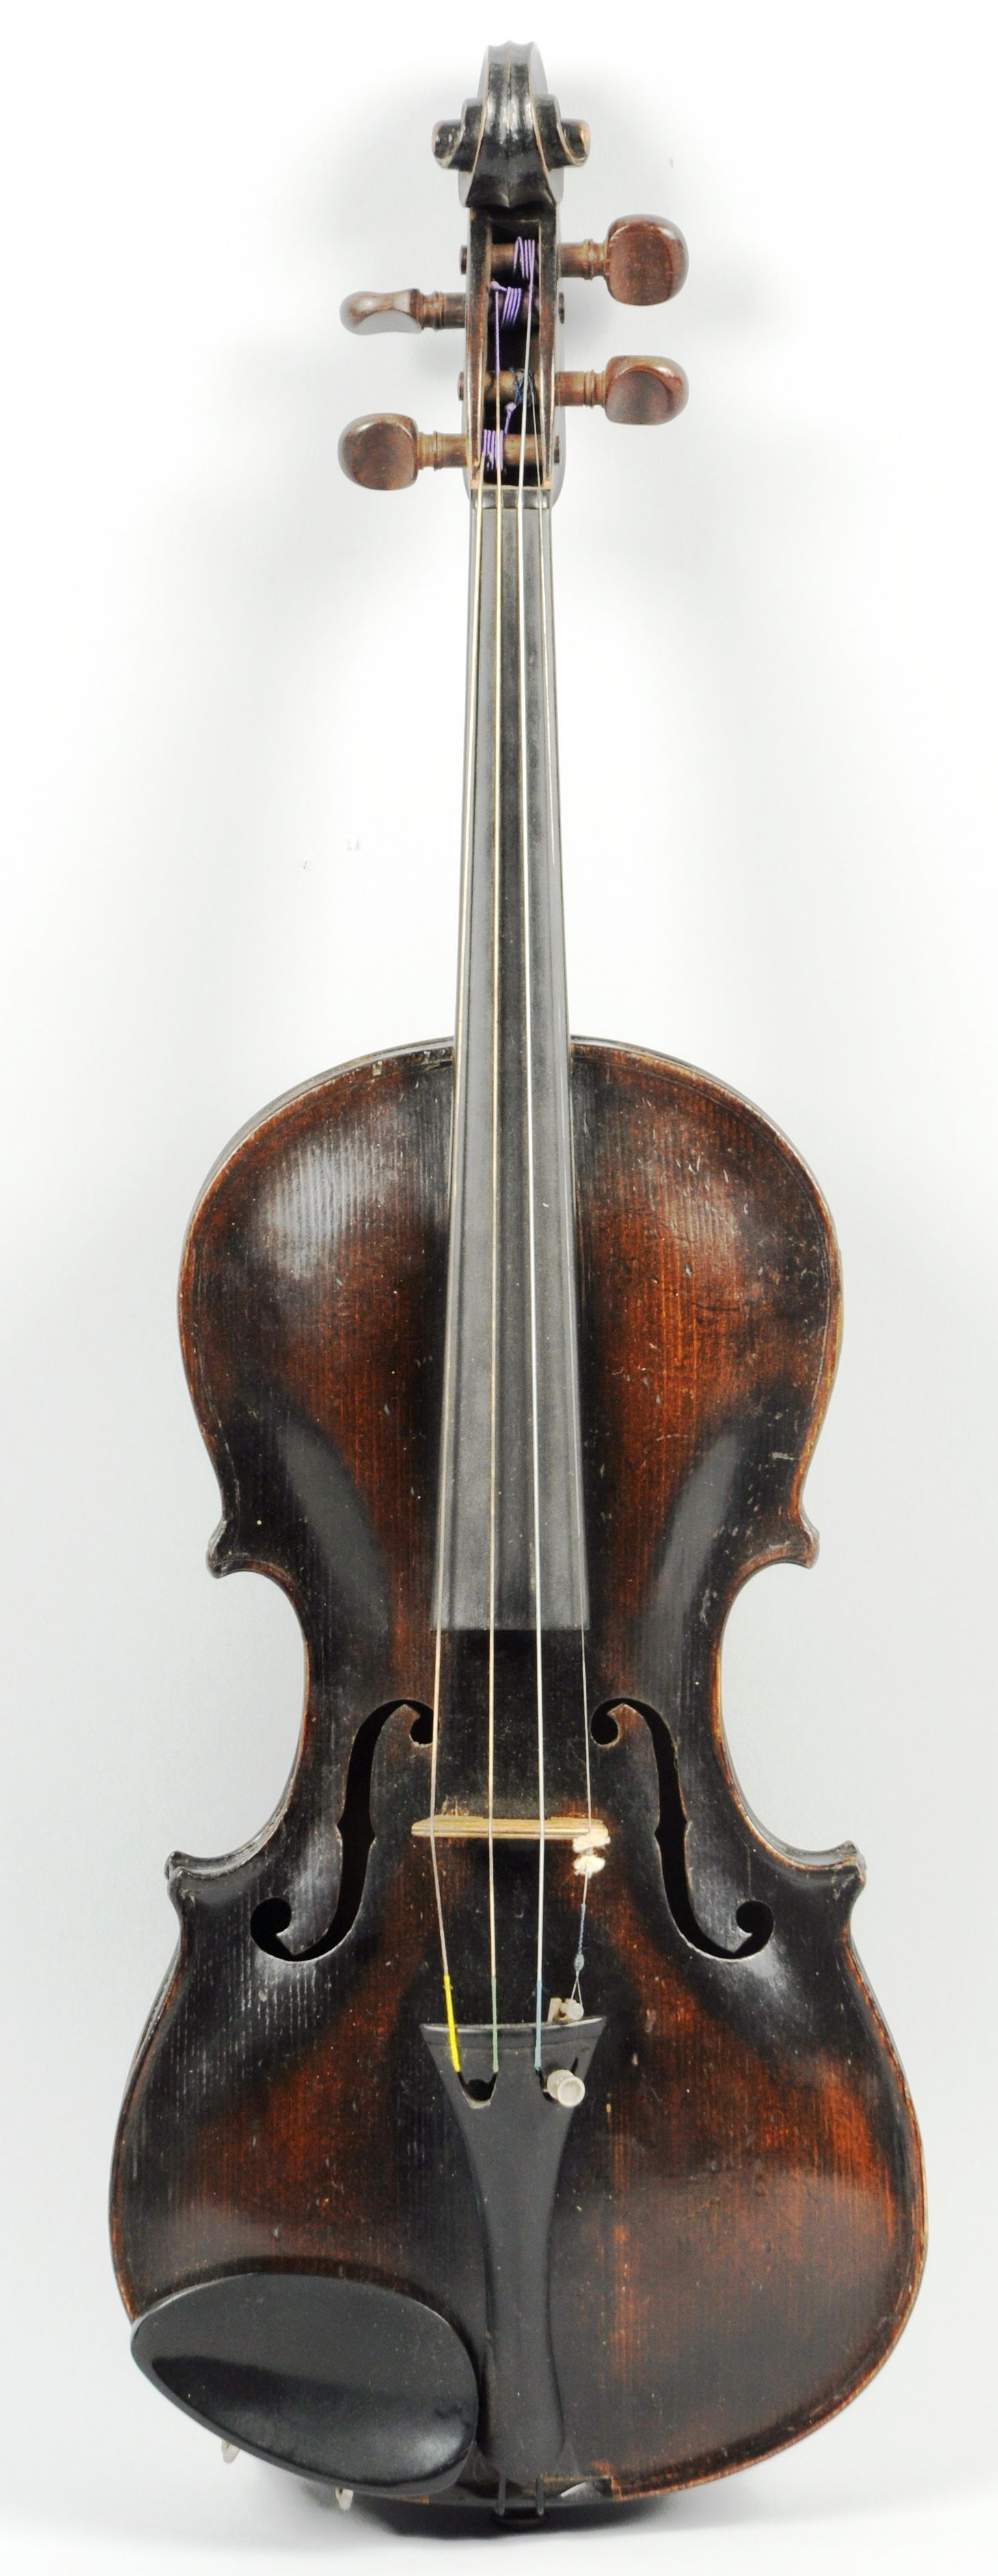 Jacobus Steiner Model Violin Full Size And In Playing Condition Steiner Violin Morphyauctions Violin Violin Music Musical Instruments